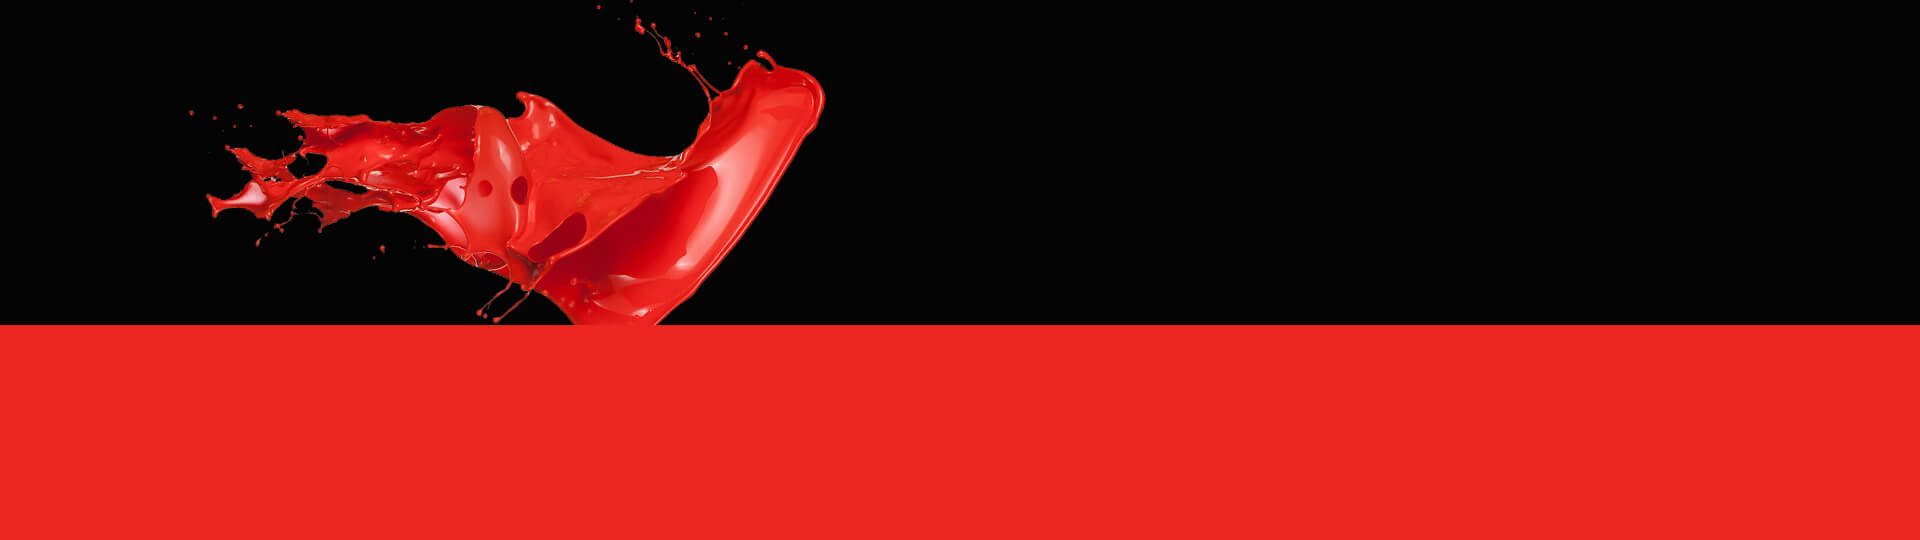 pigment red banner homepage